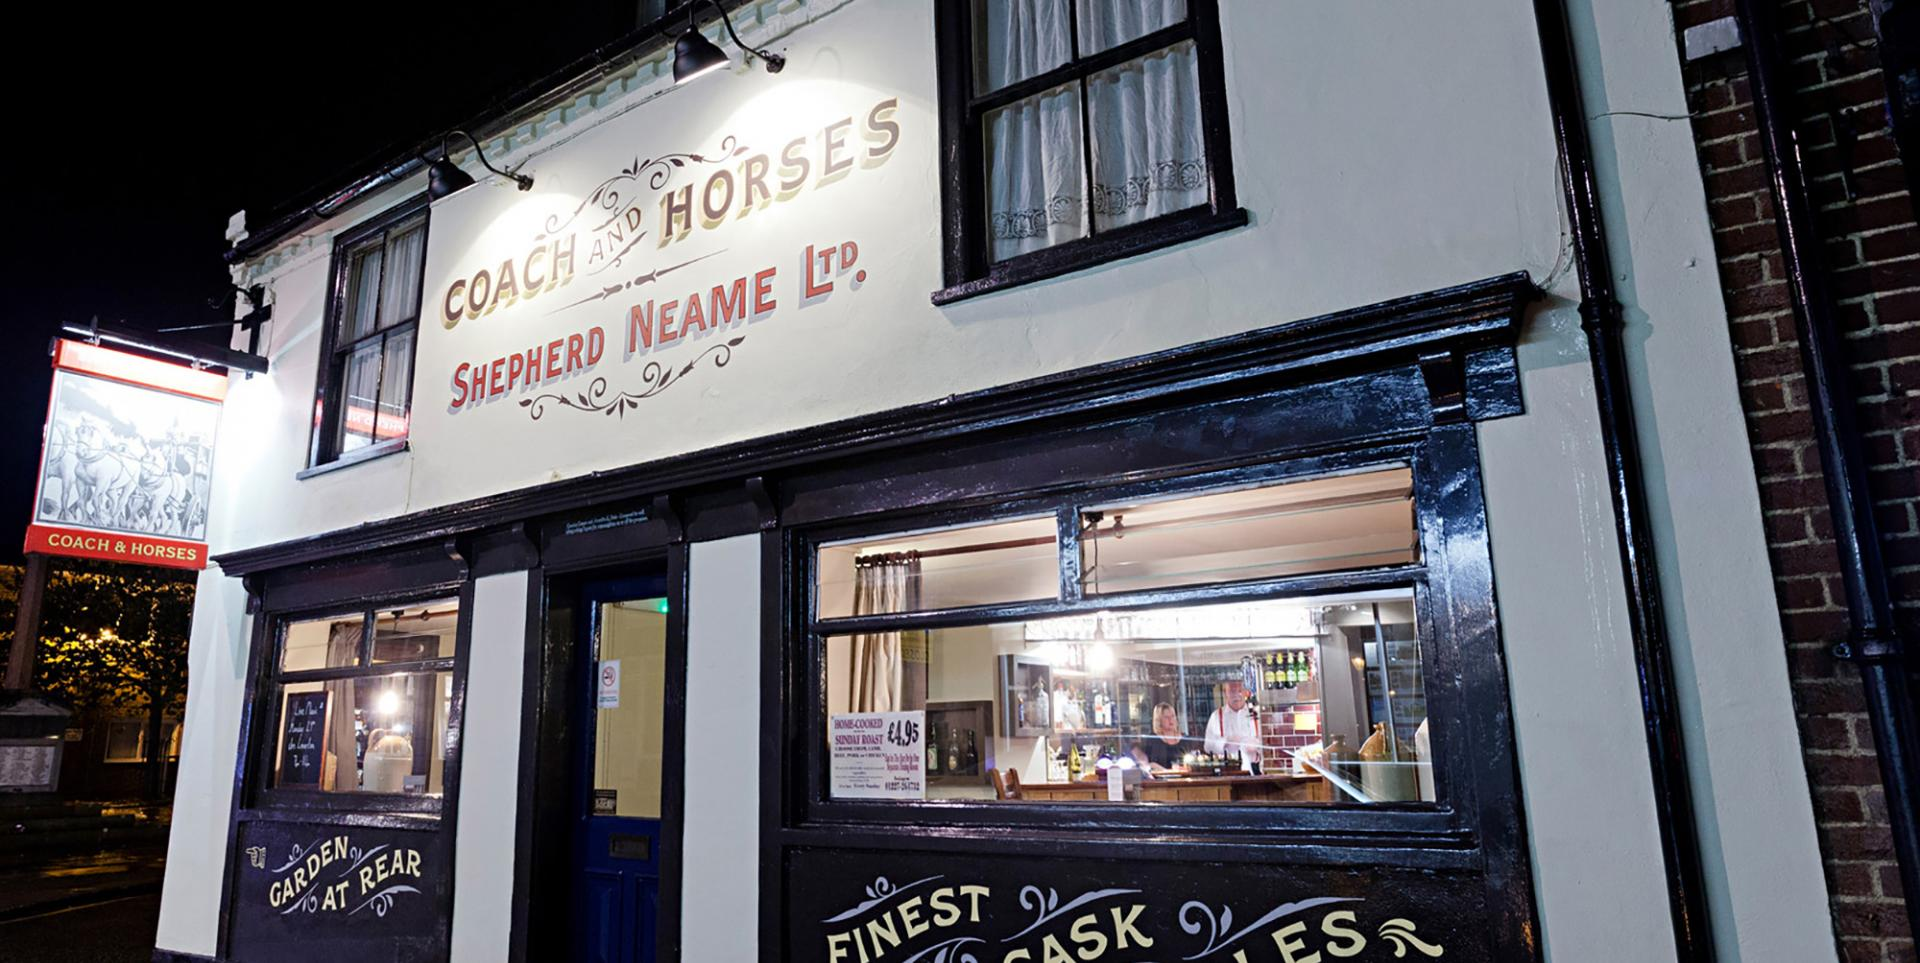 Coach & Horses Whitstable